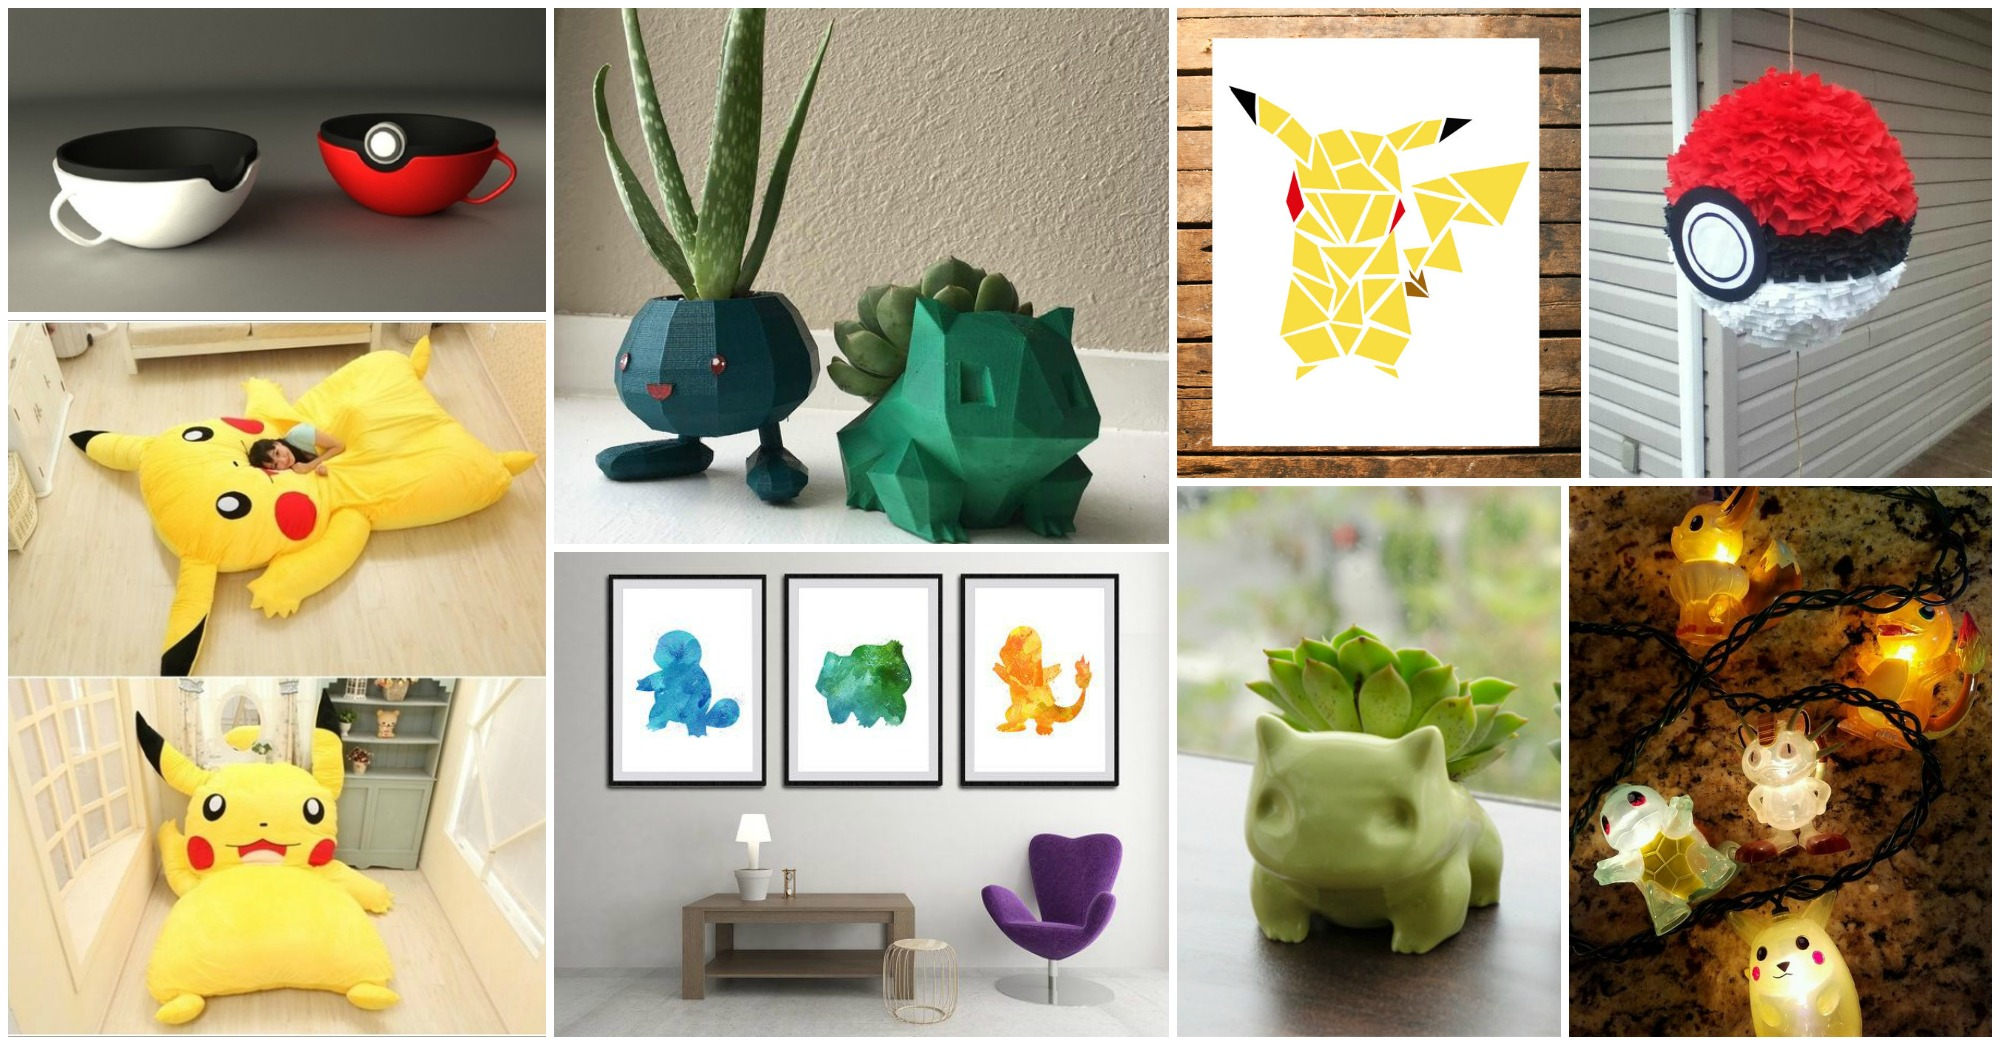 Adorable Pokemon Go Home Decor Ideas That Will Blow Your Mind